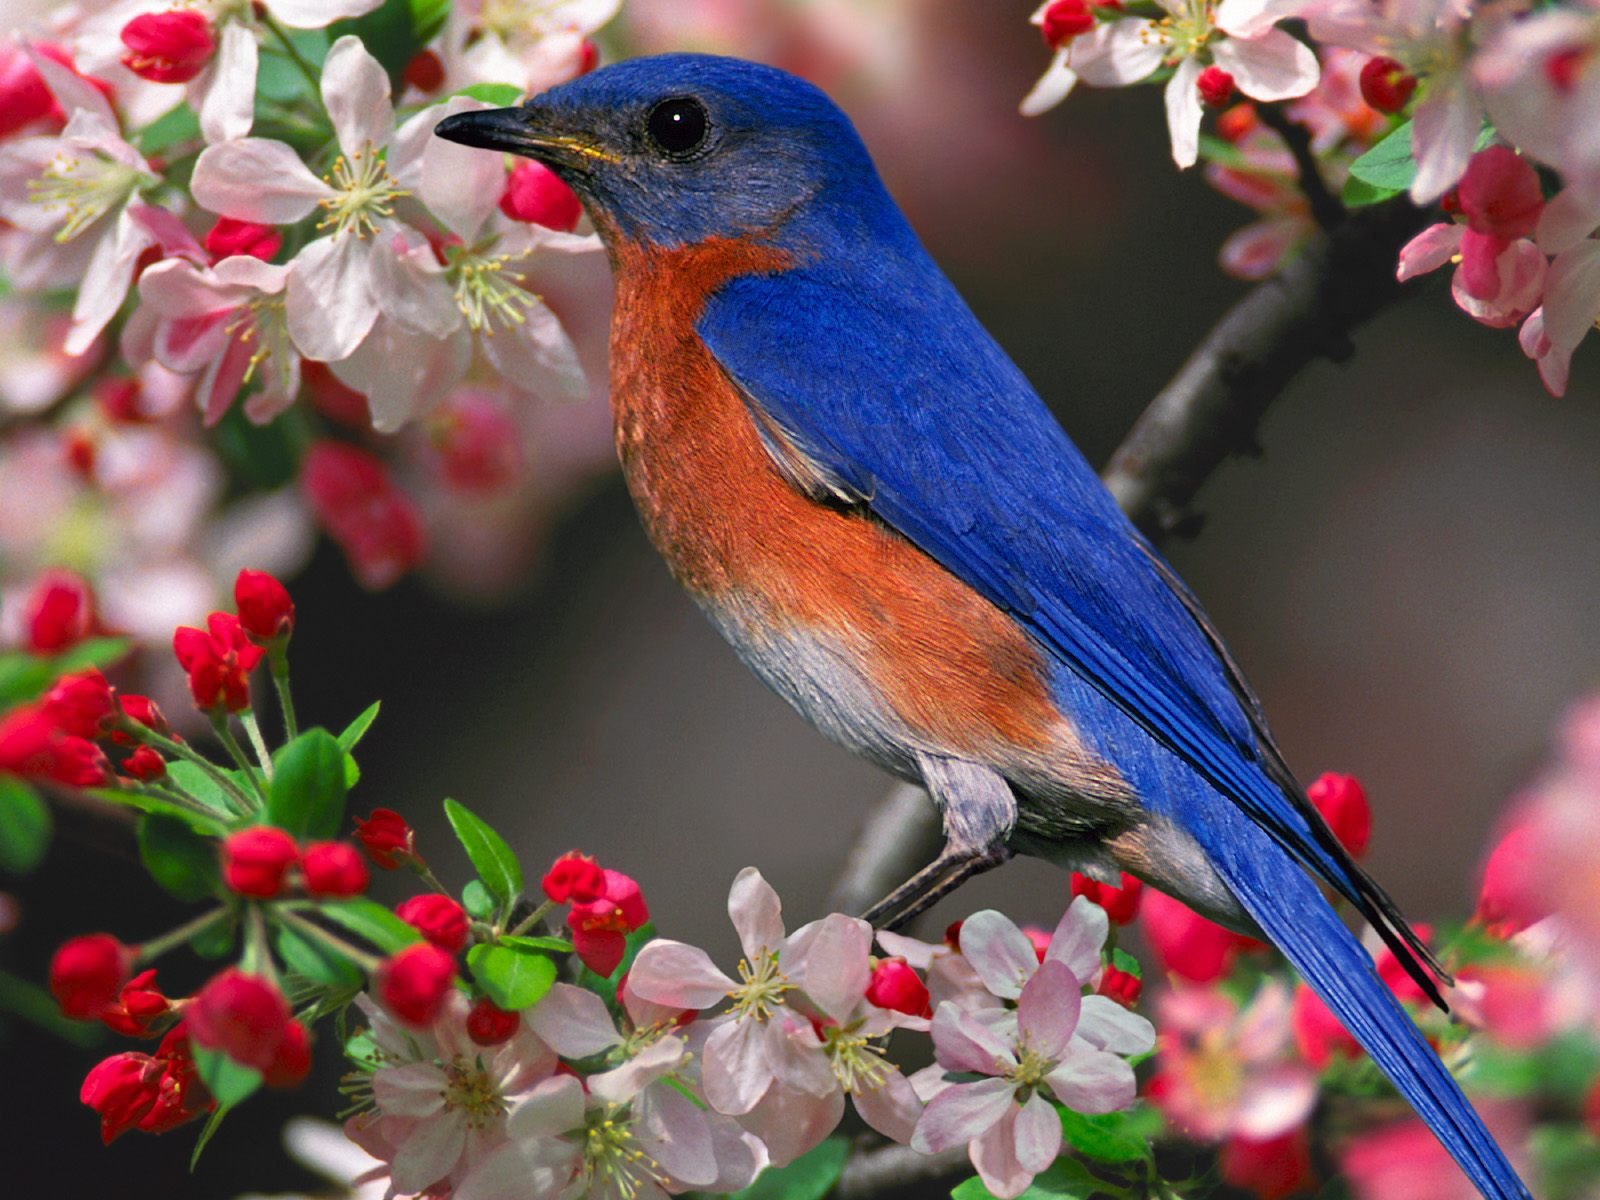 mp3 download free forever: birds wallpapers, beautiful love birds